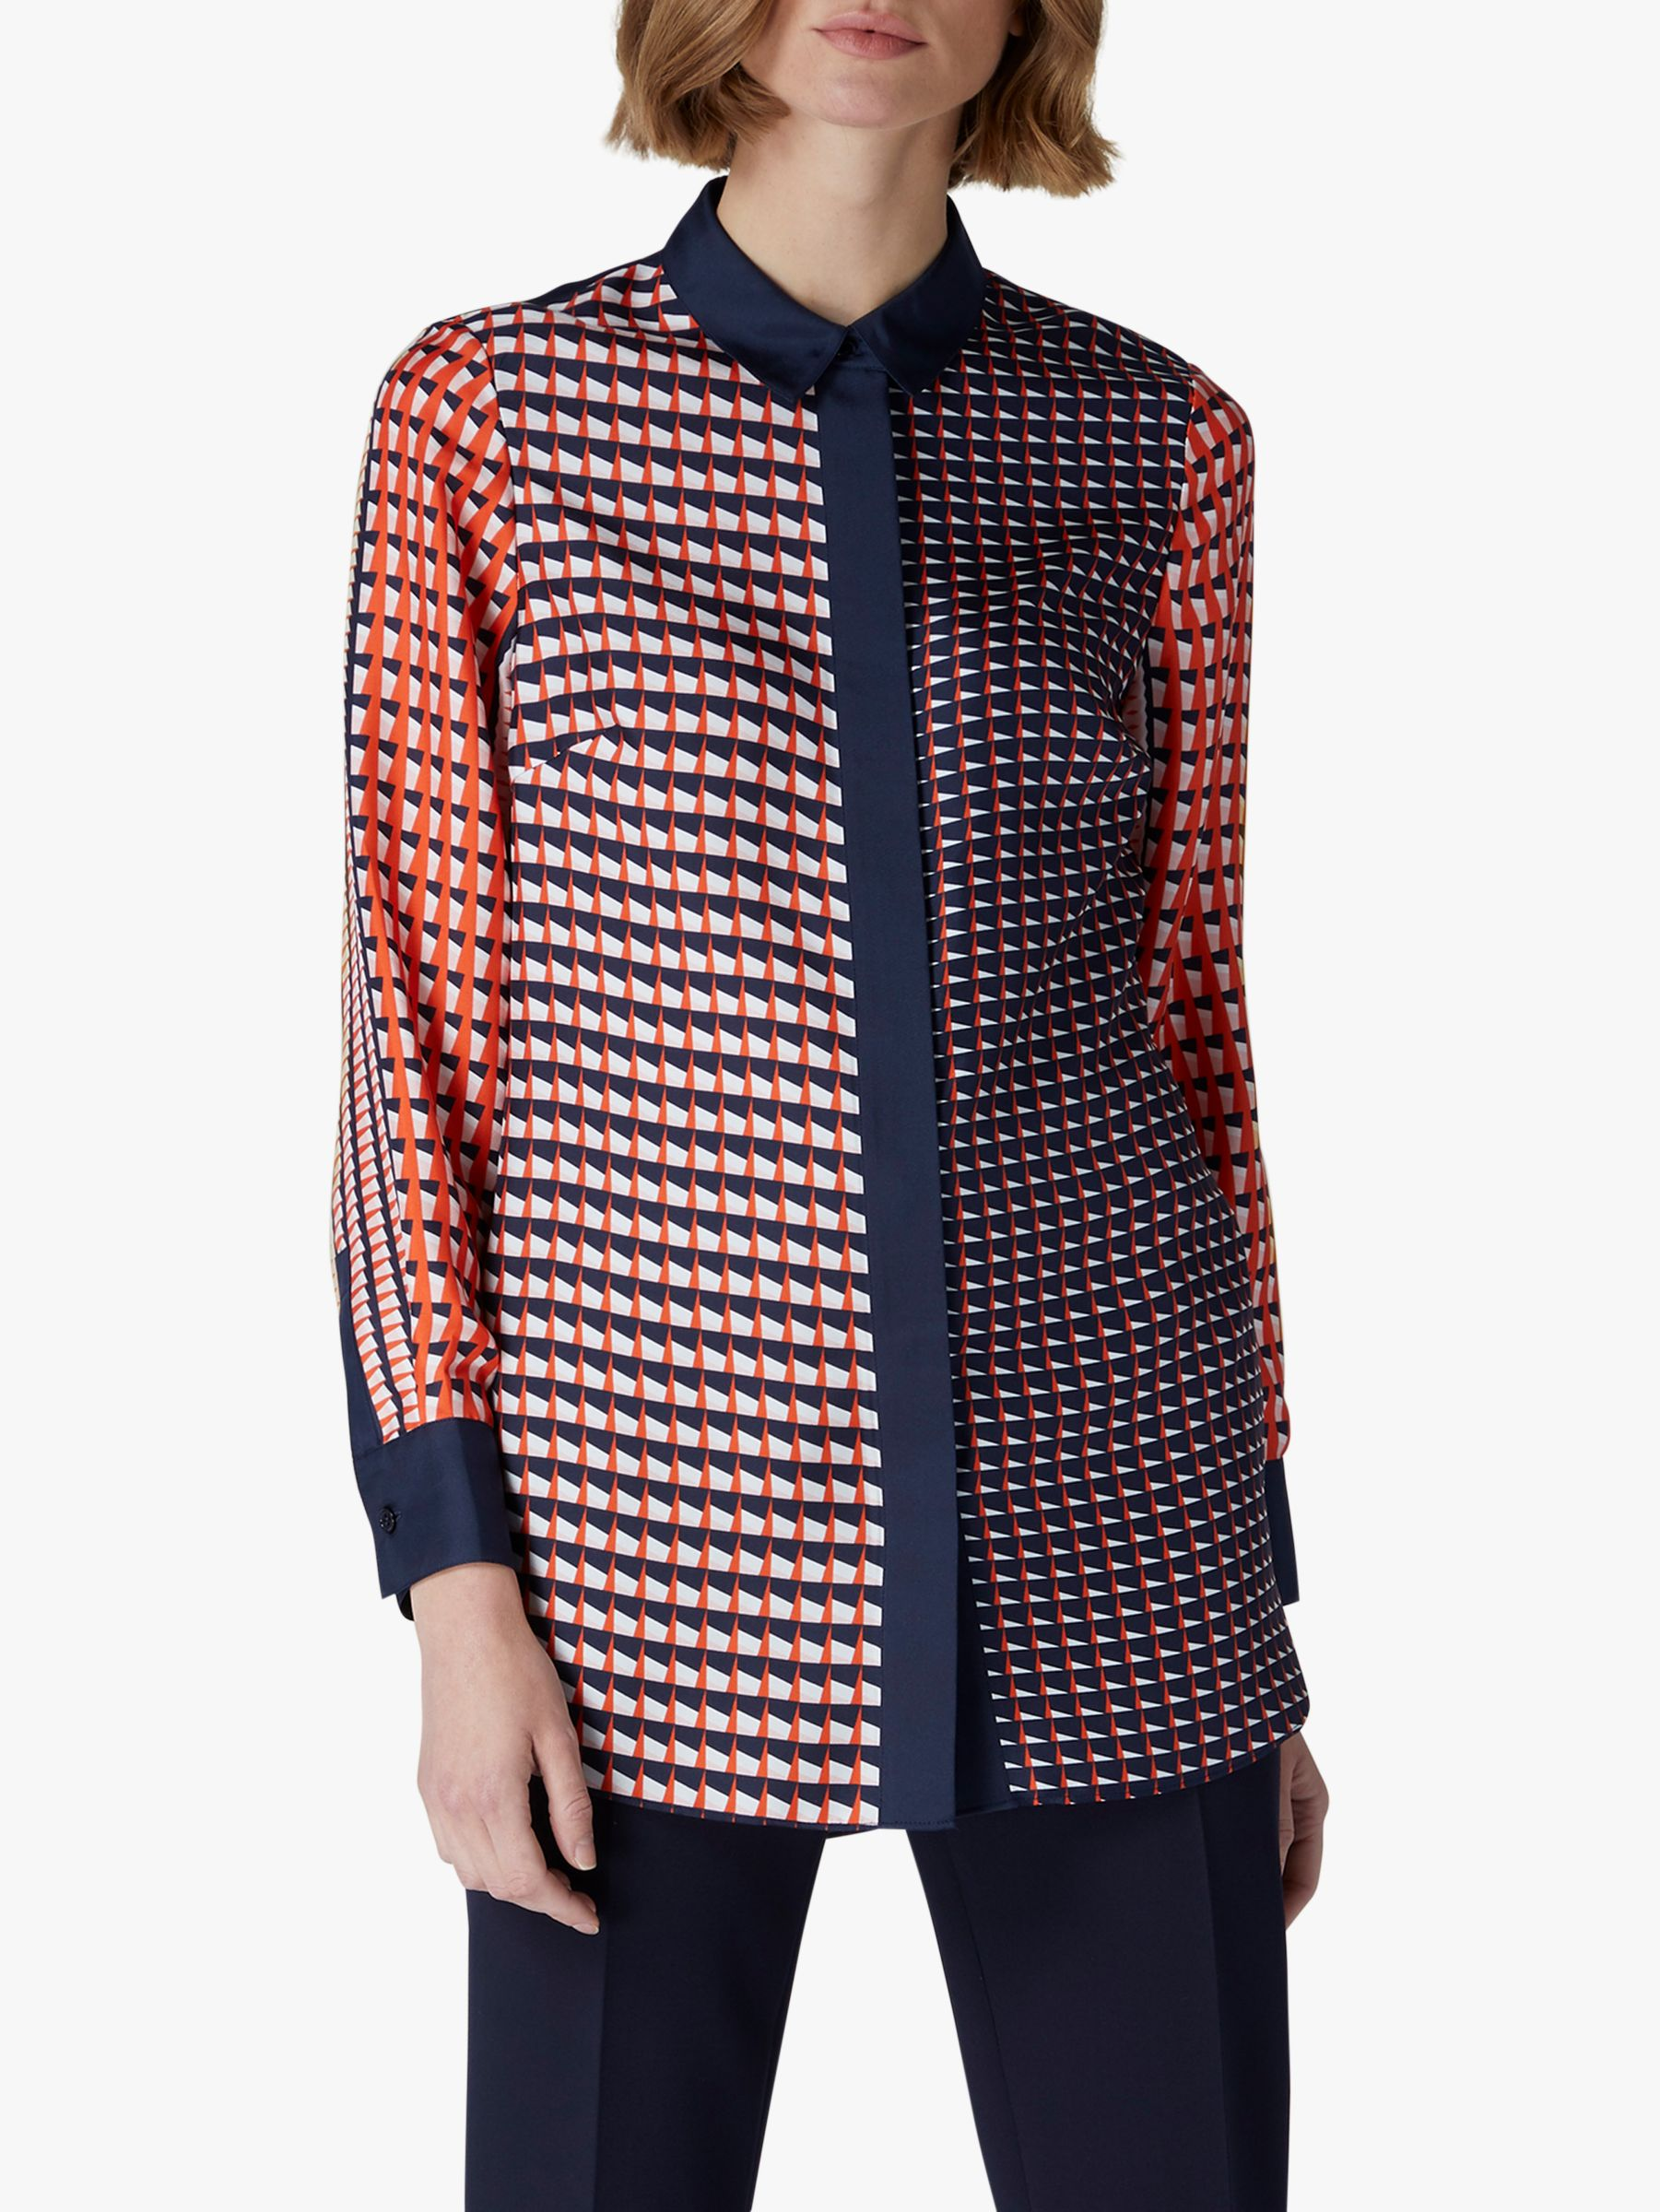 Jaeger Jaeger Geometric Silk Shirt, Red/Multi